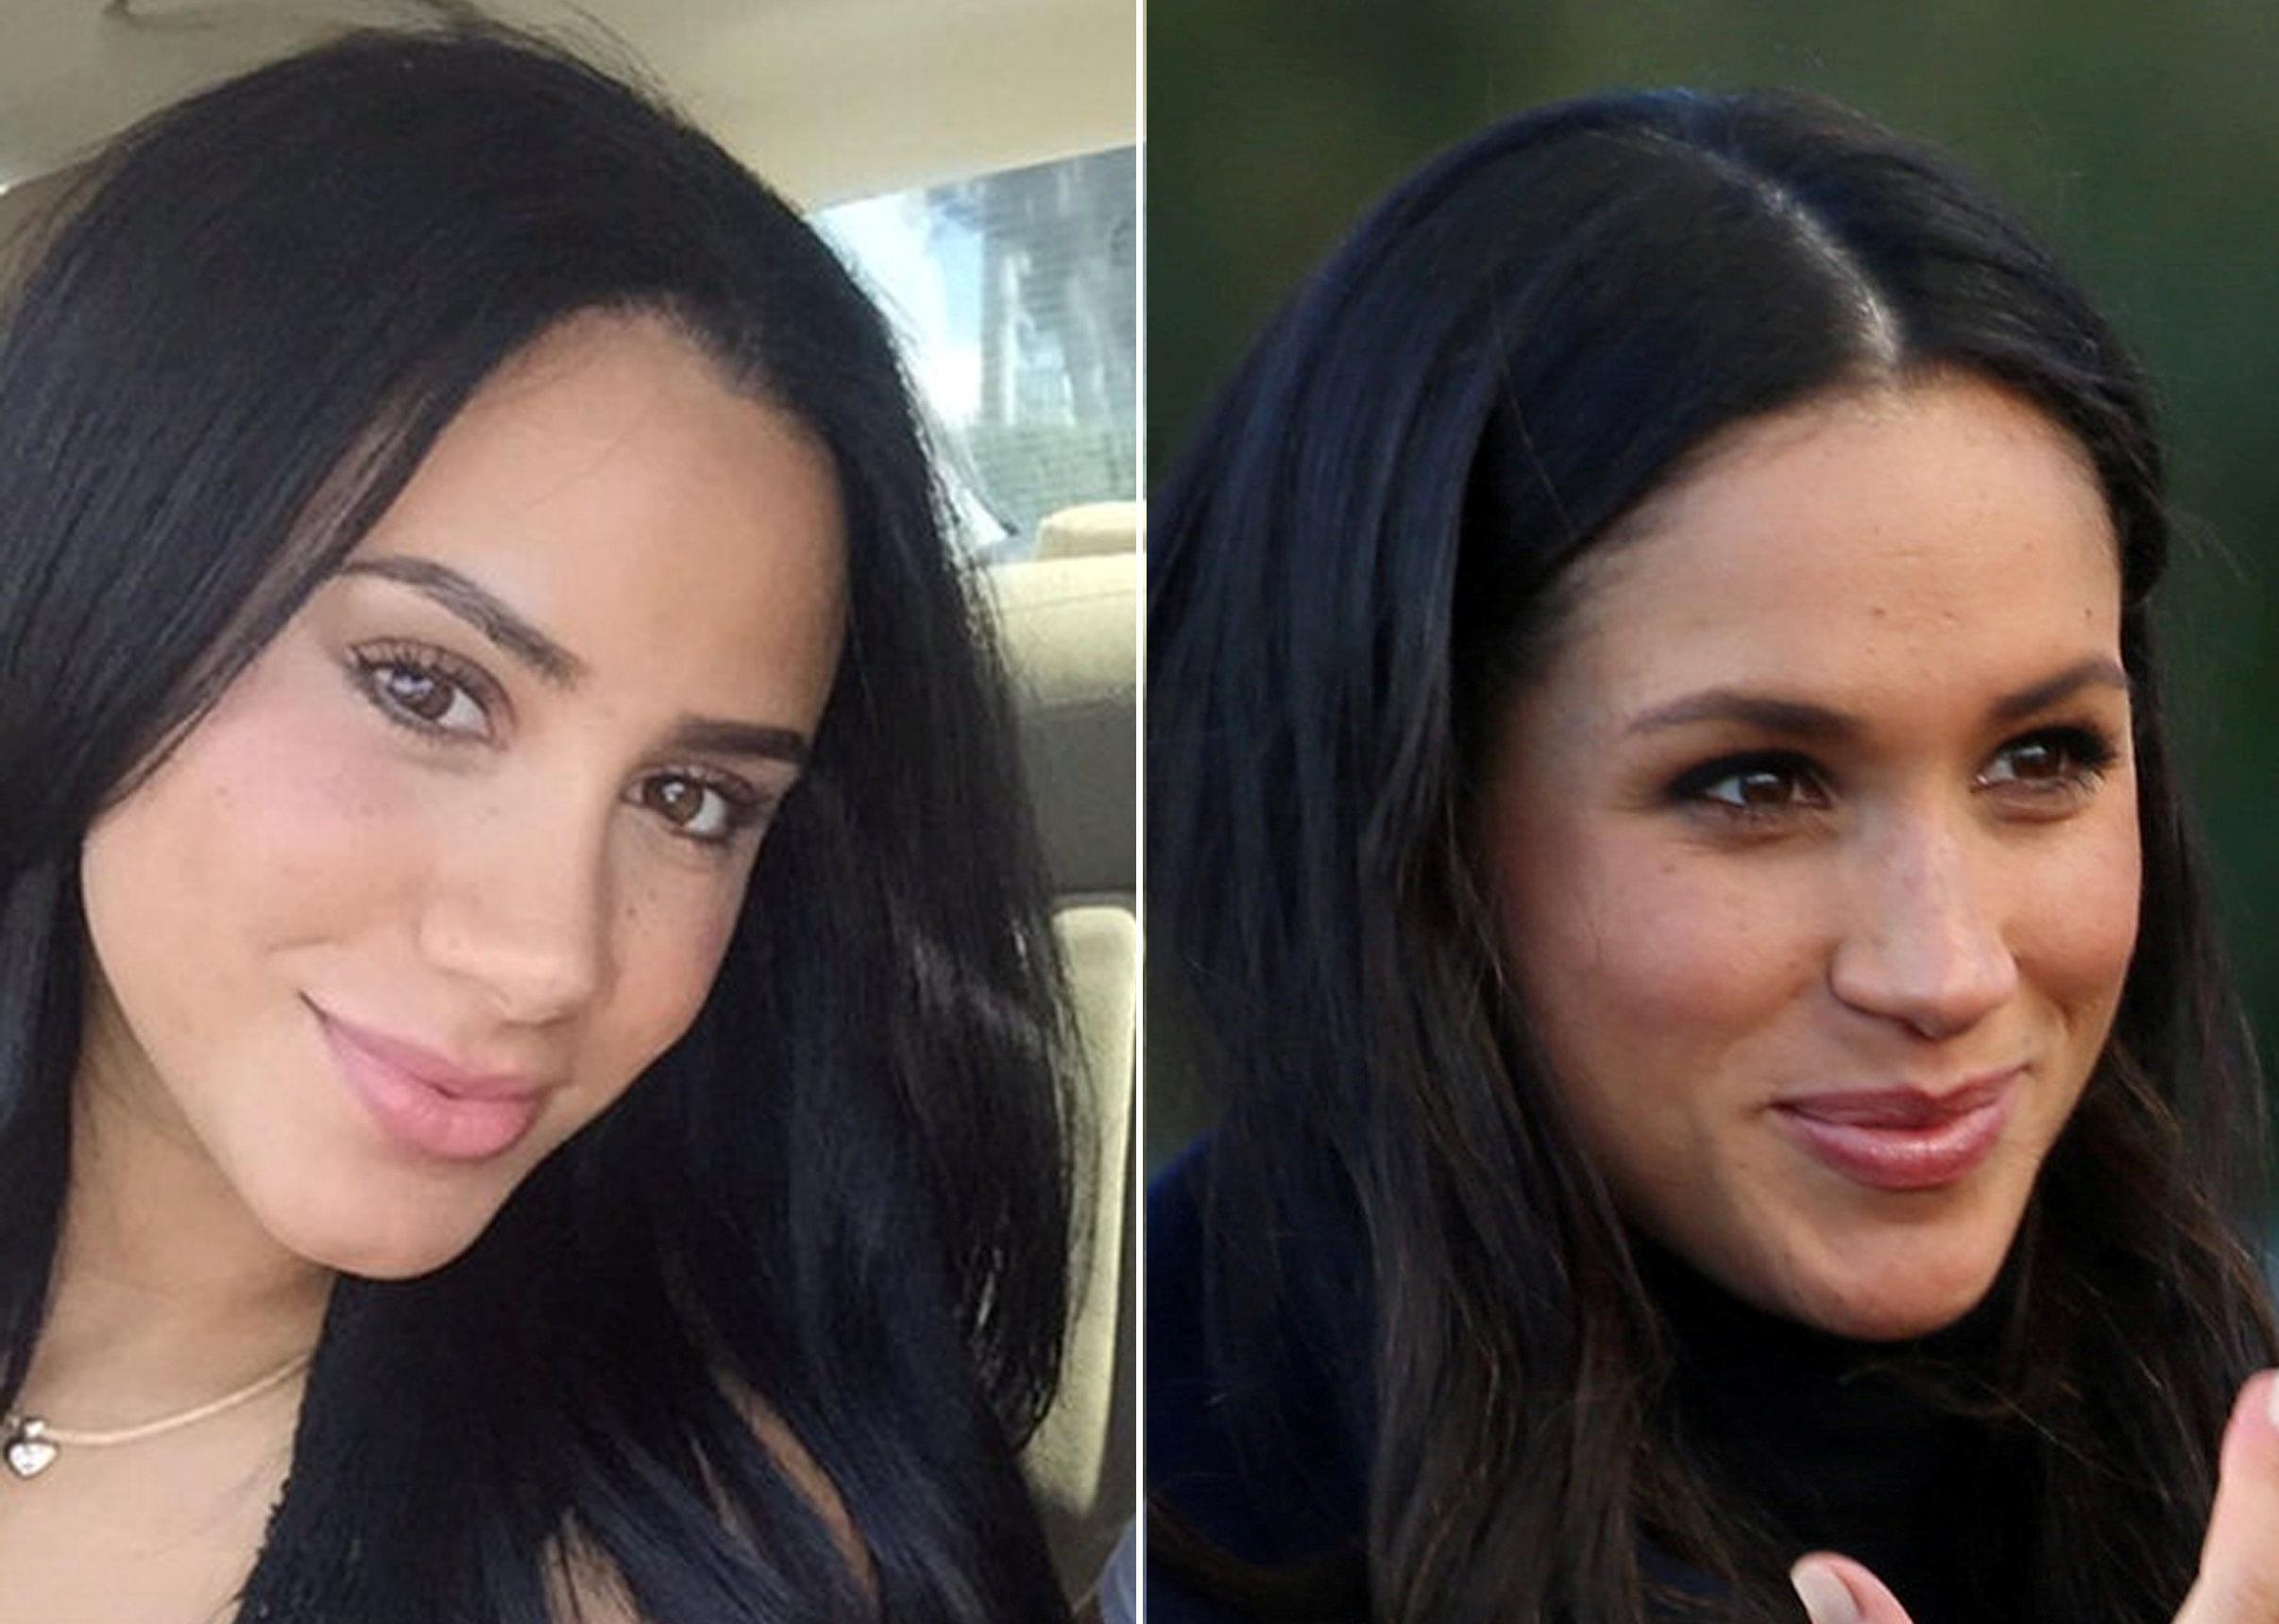 A Meghan Markle lookalike exists. (Photo: SWNS)